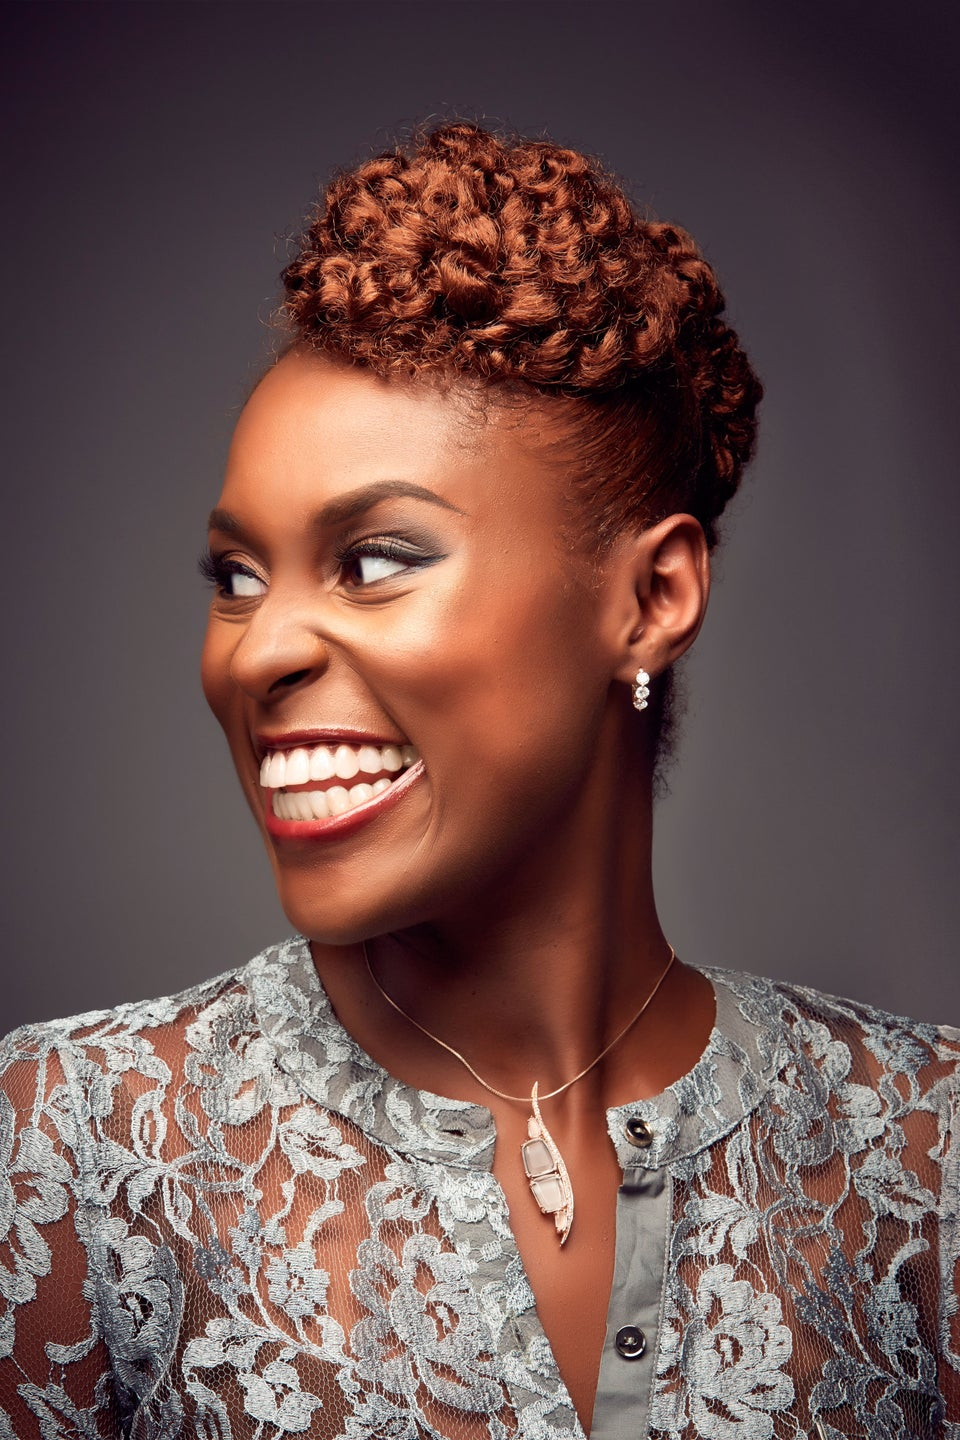 Issa Rae Talks Sex And Double Standards During 'The Breakfast Club' Interview